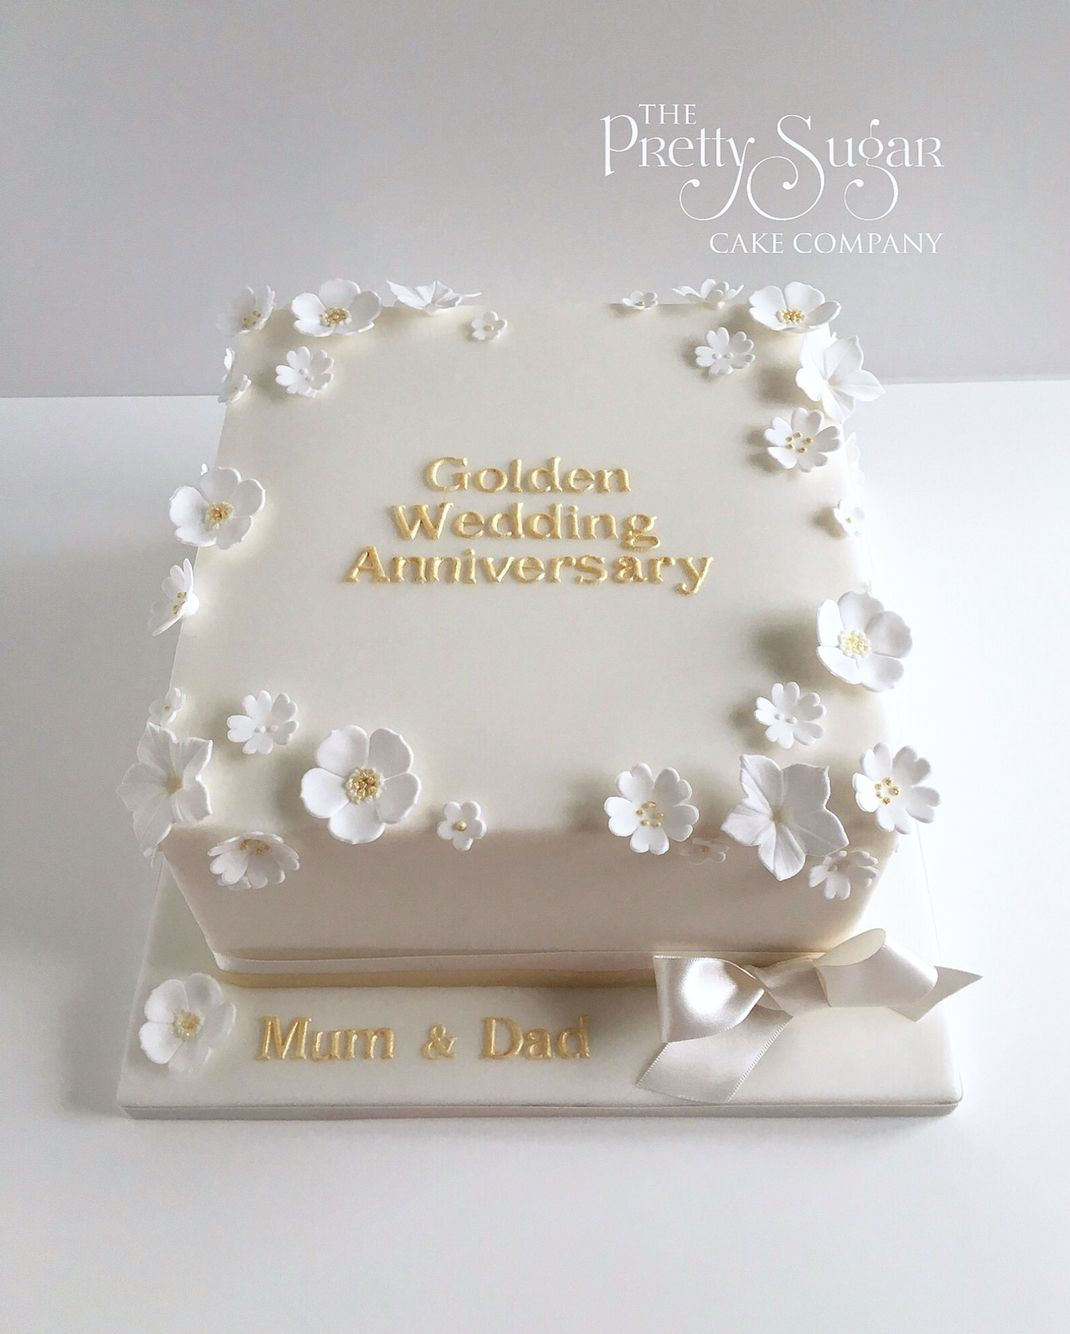 Golden Wedding Anniversary Cake With White And Gold